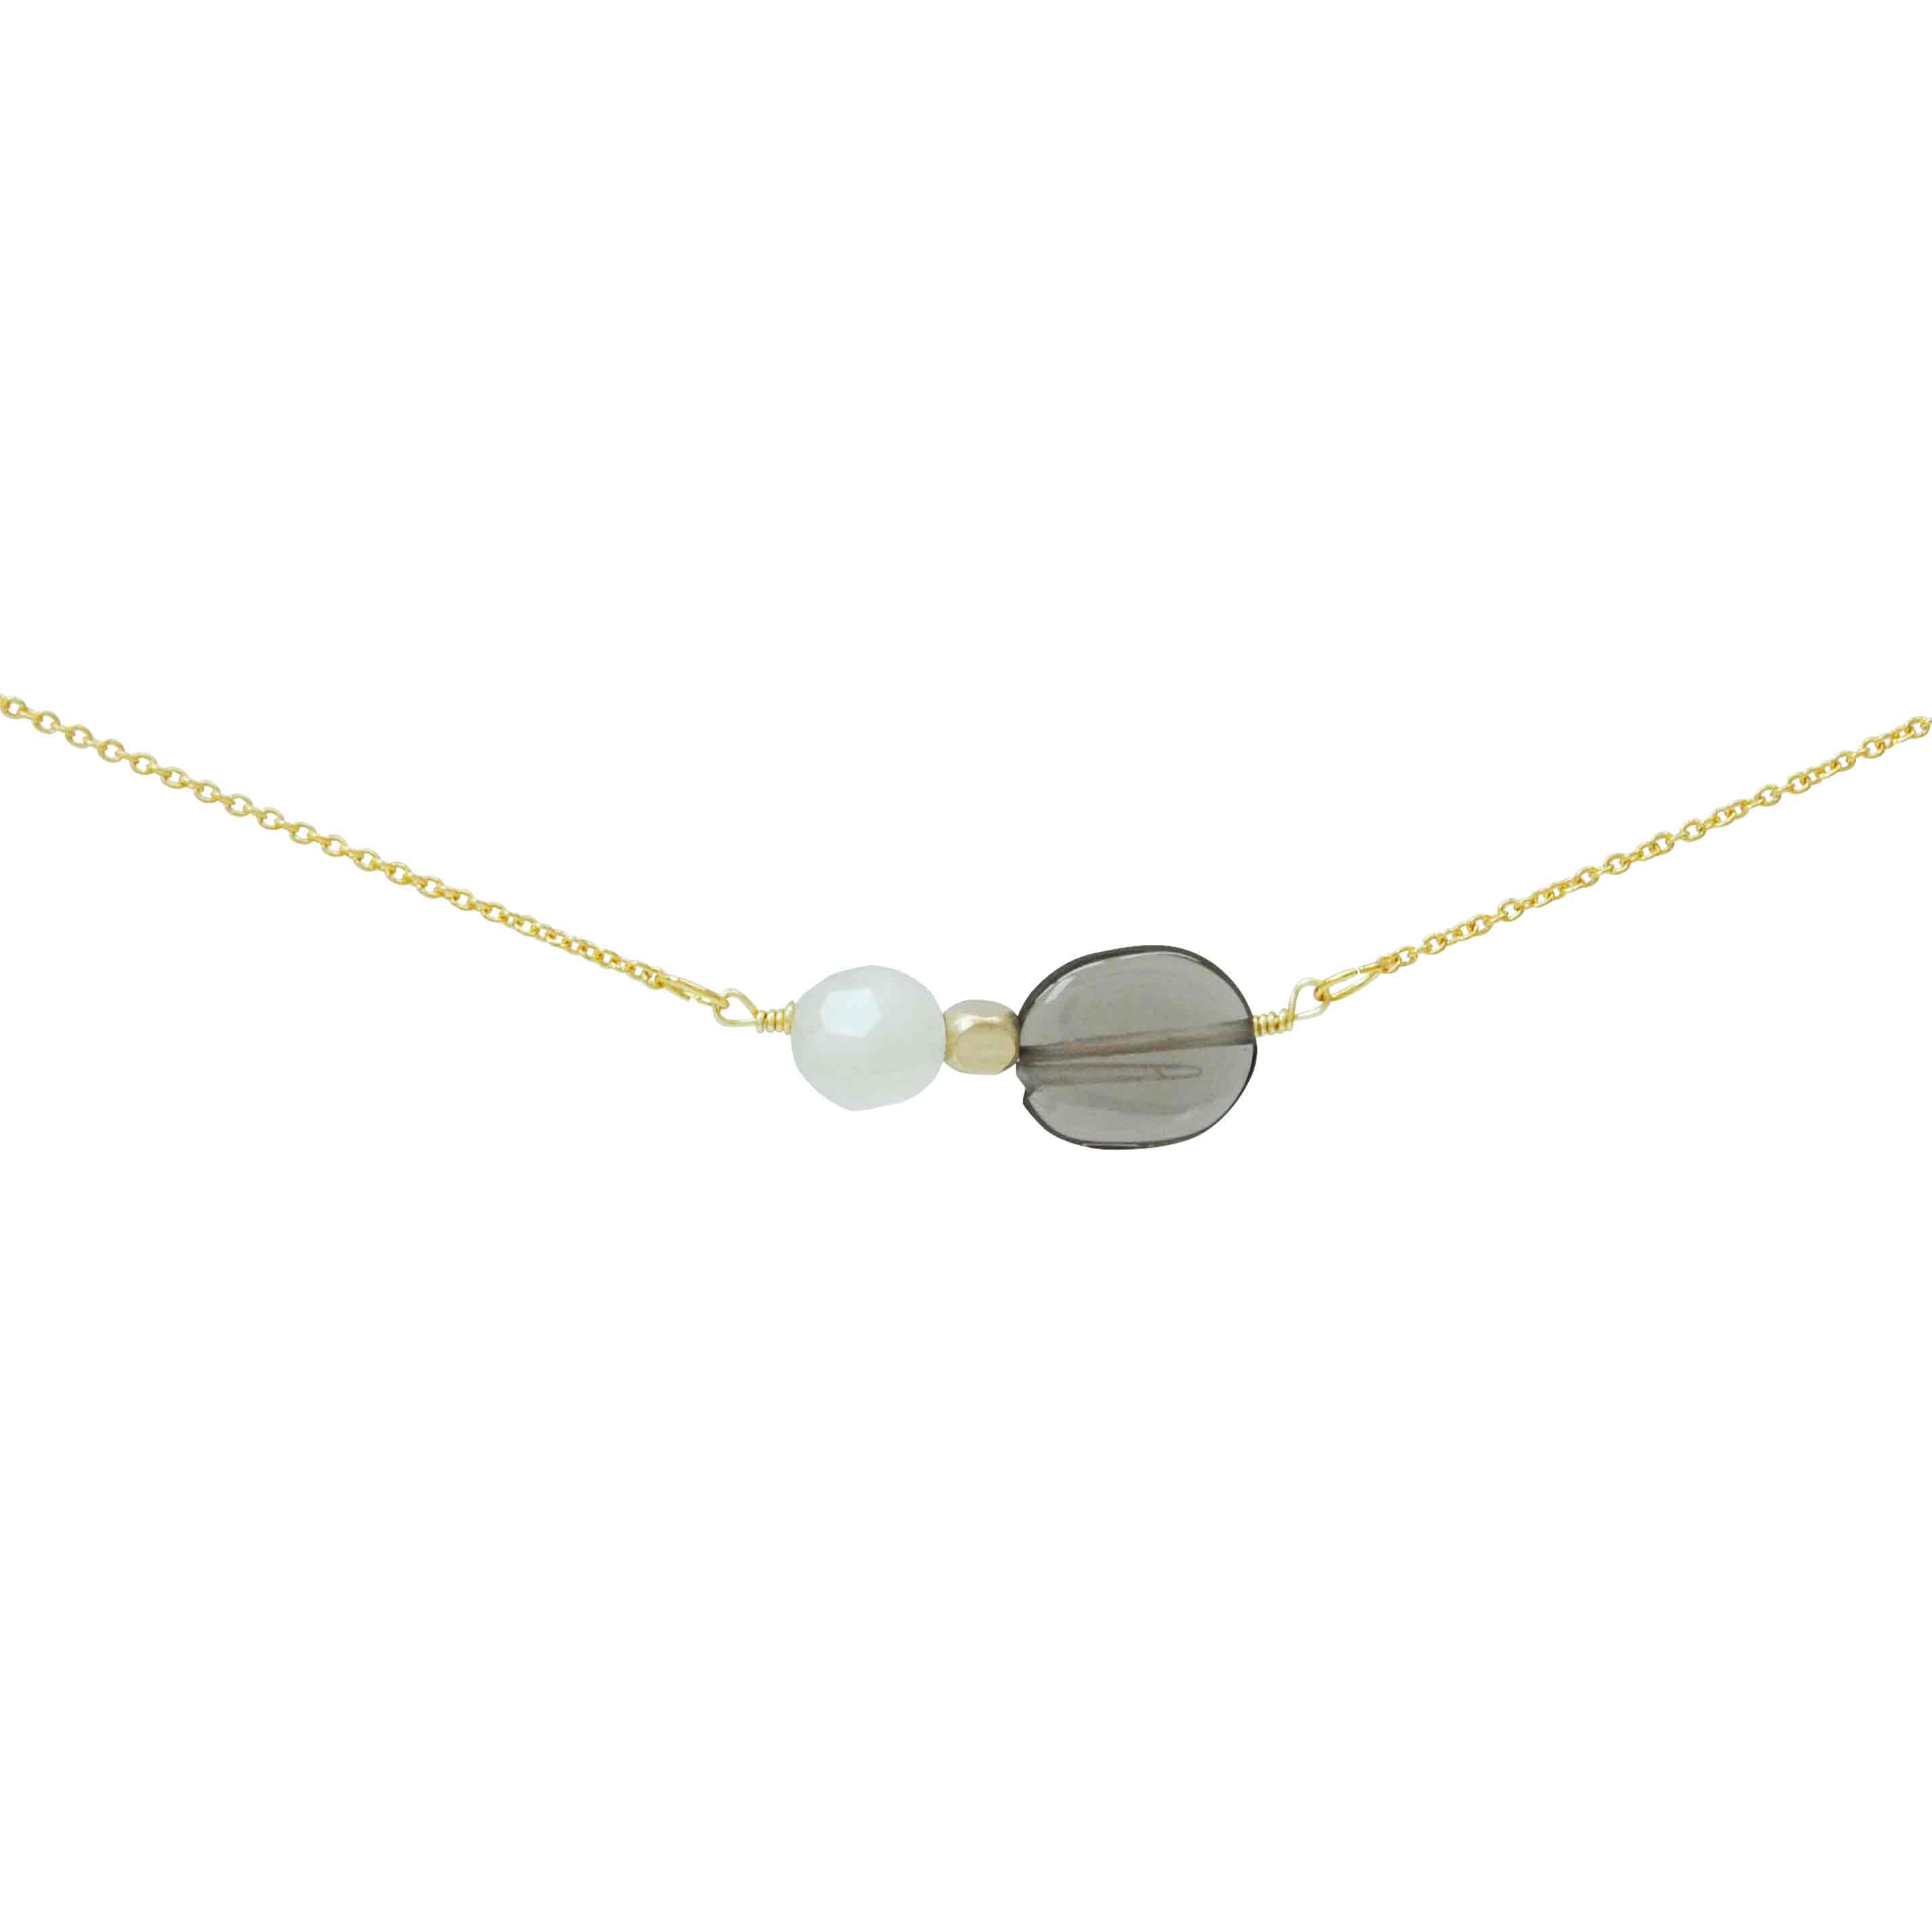 NECKLACE-n1500s010画像